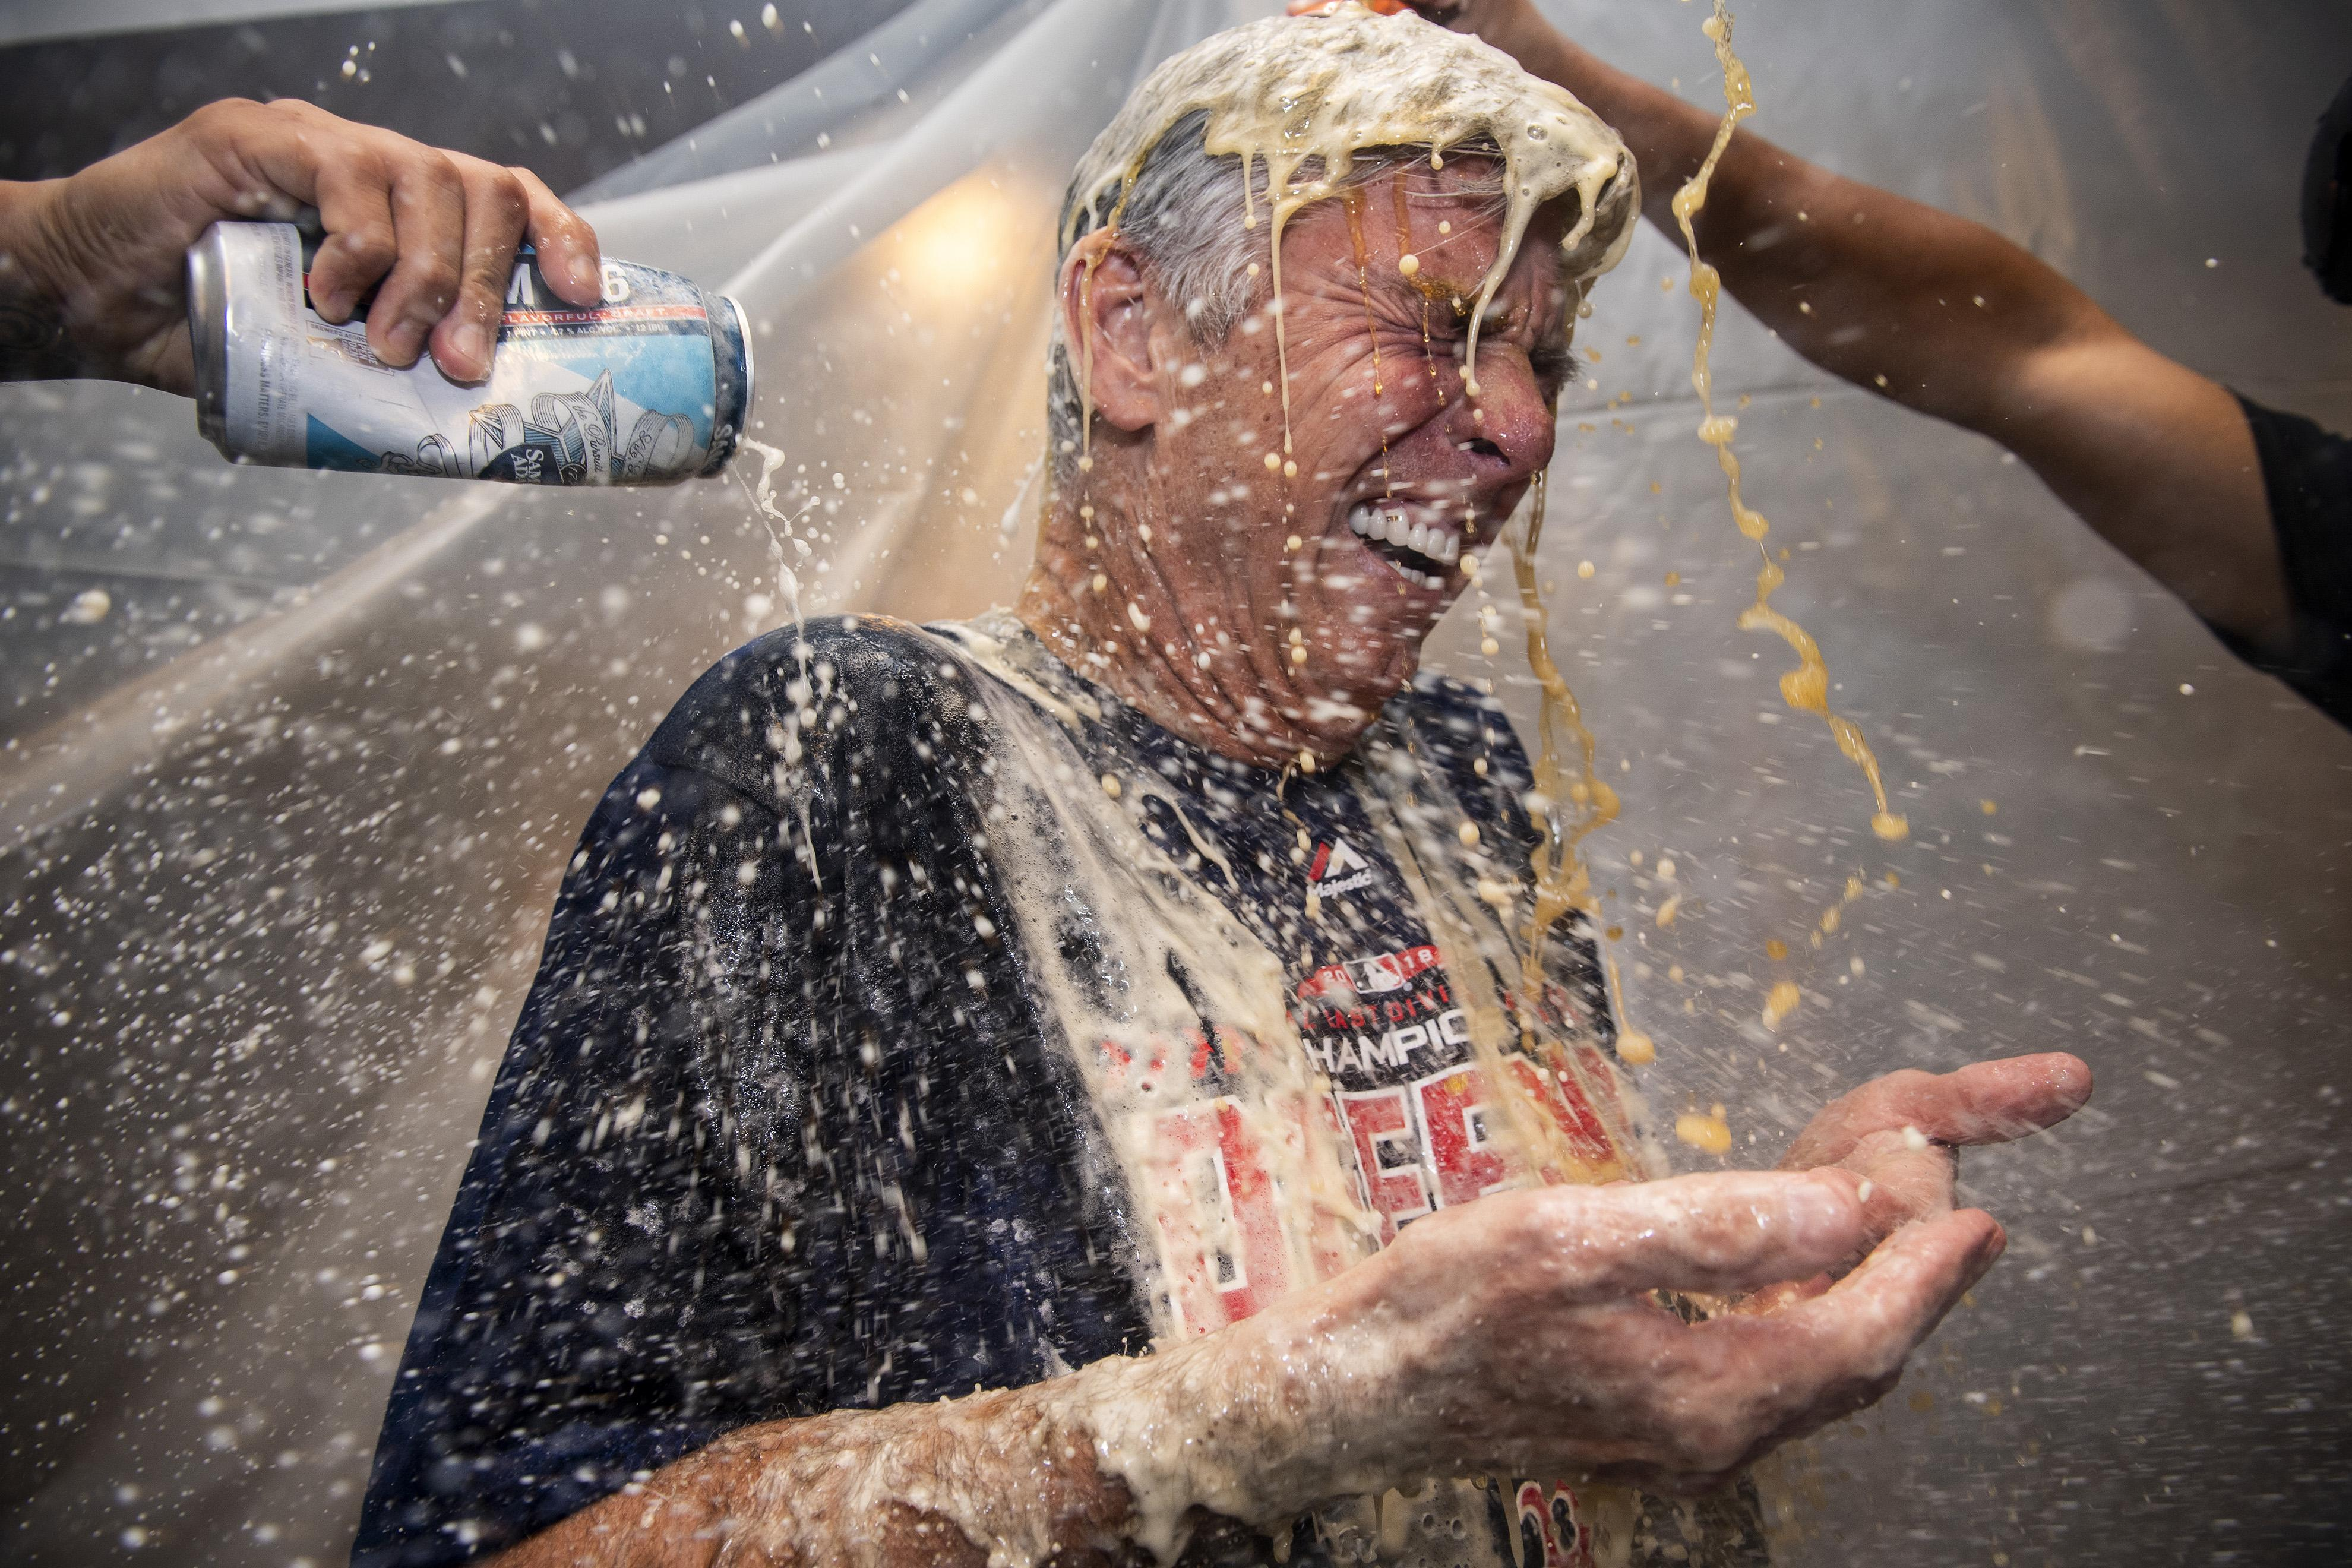 Jubilant players laugh as they celebrate winning the AL East championship